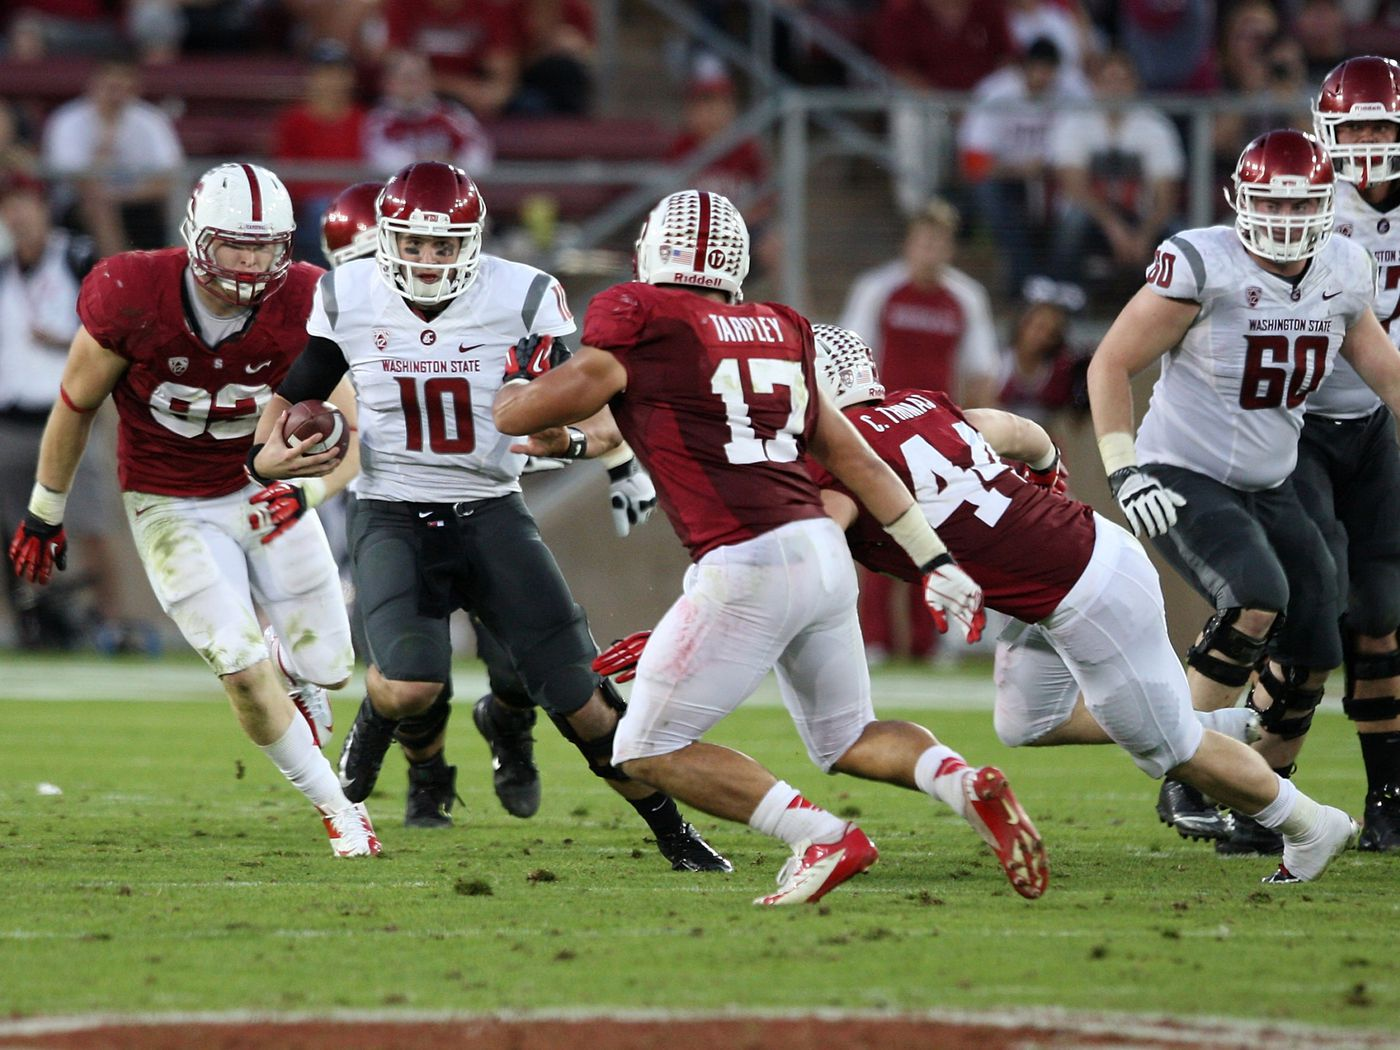 WSU Football vs. Utah: Cougars Match-up Well with Utes